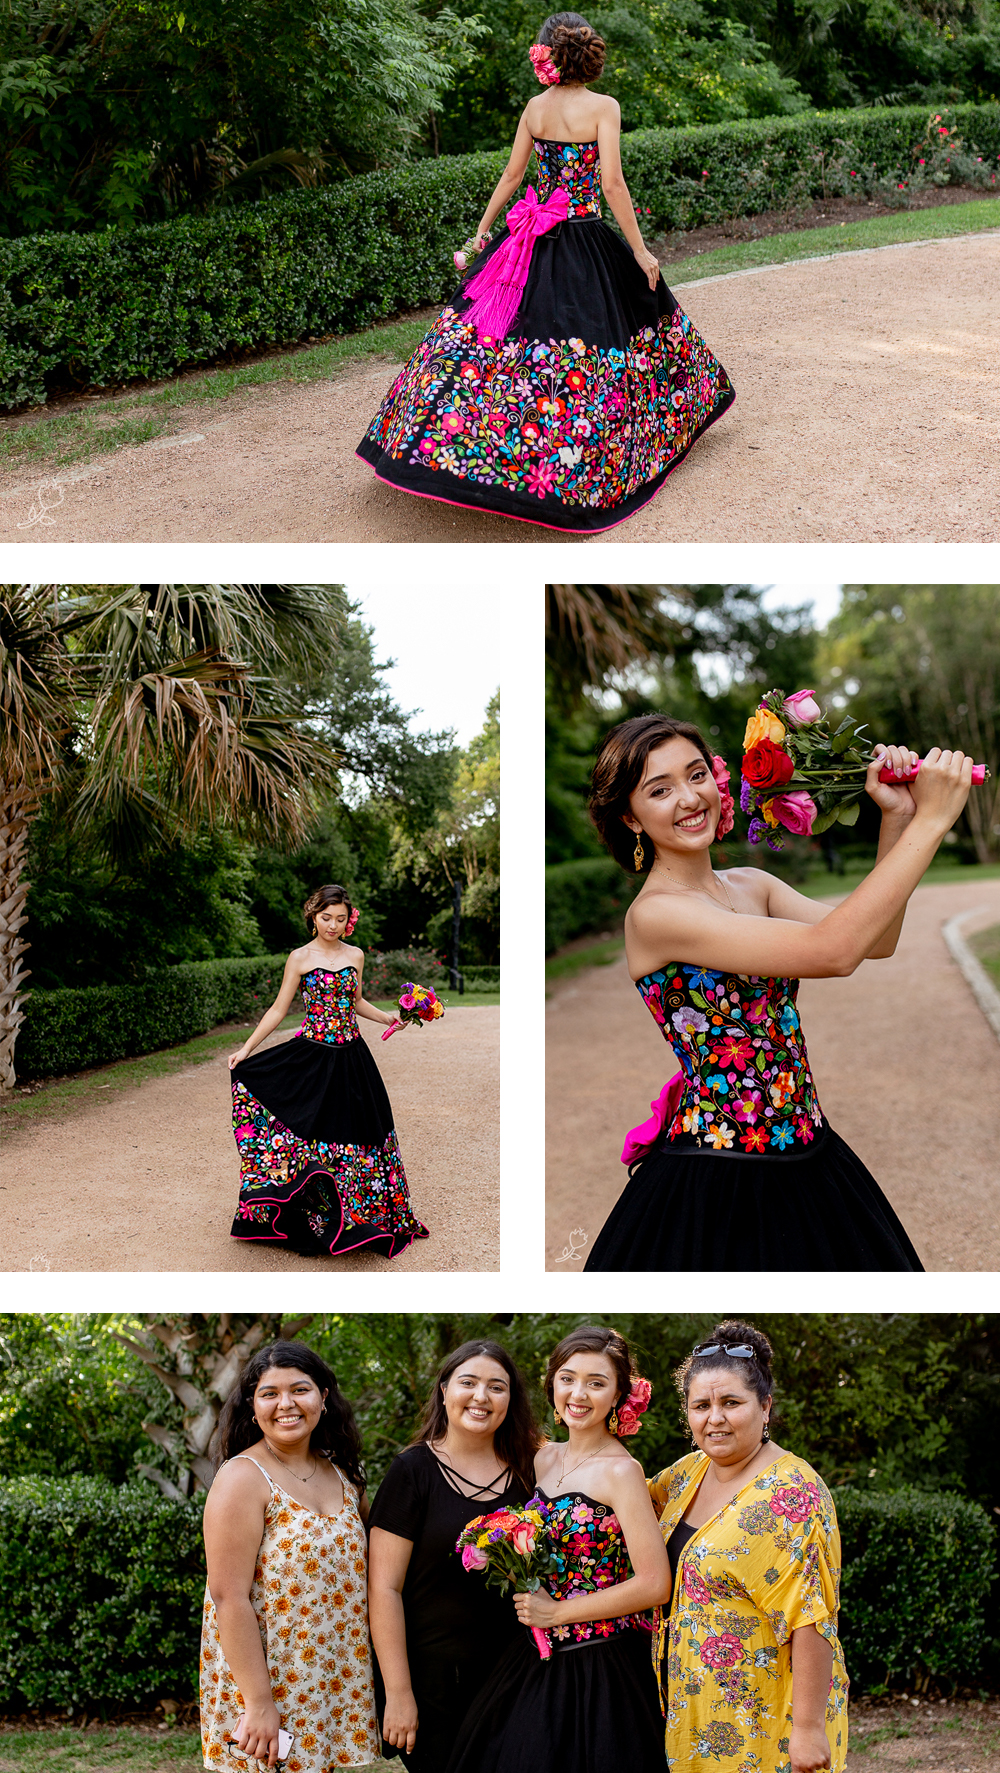 Quinceañera portraits wearing colorful traditional Mexican dress at Laguna Gloria in Austin, TX. Photos by Erin Reas portrait and lifestyle photographer in Austin, TX